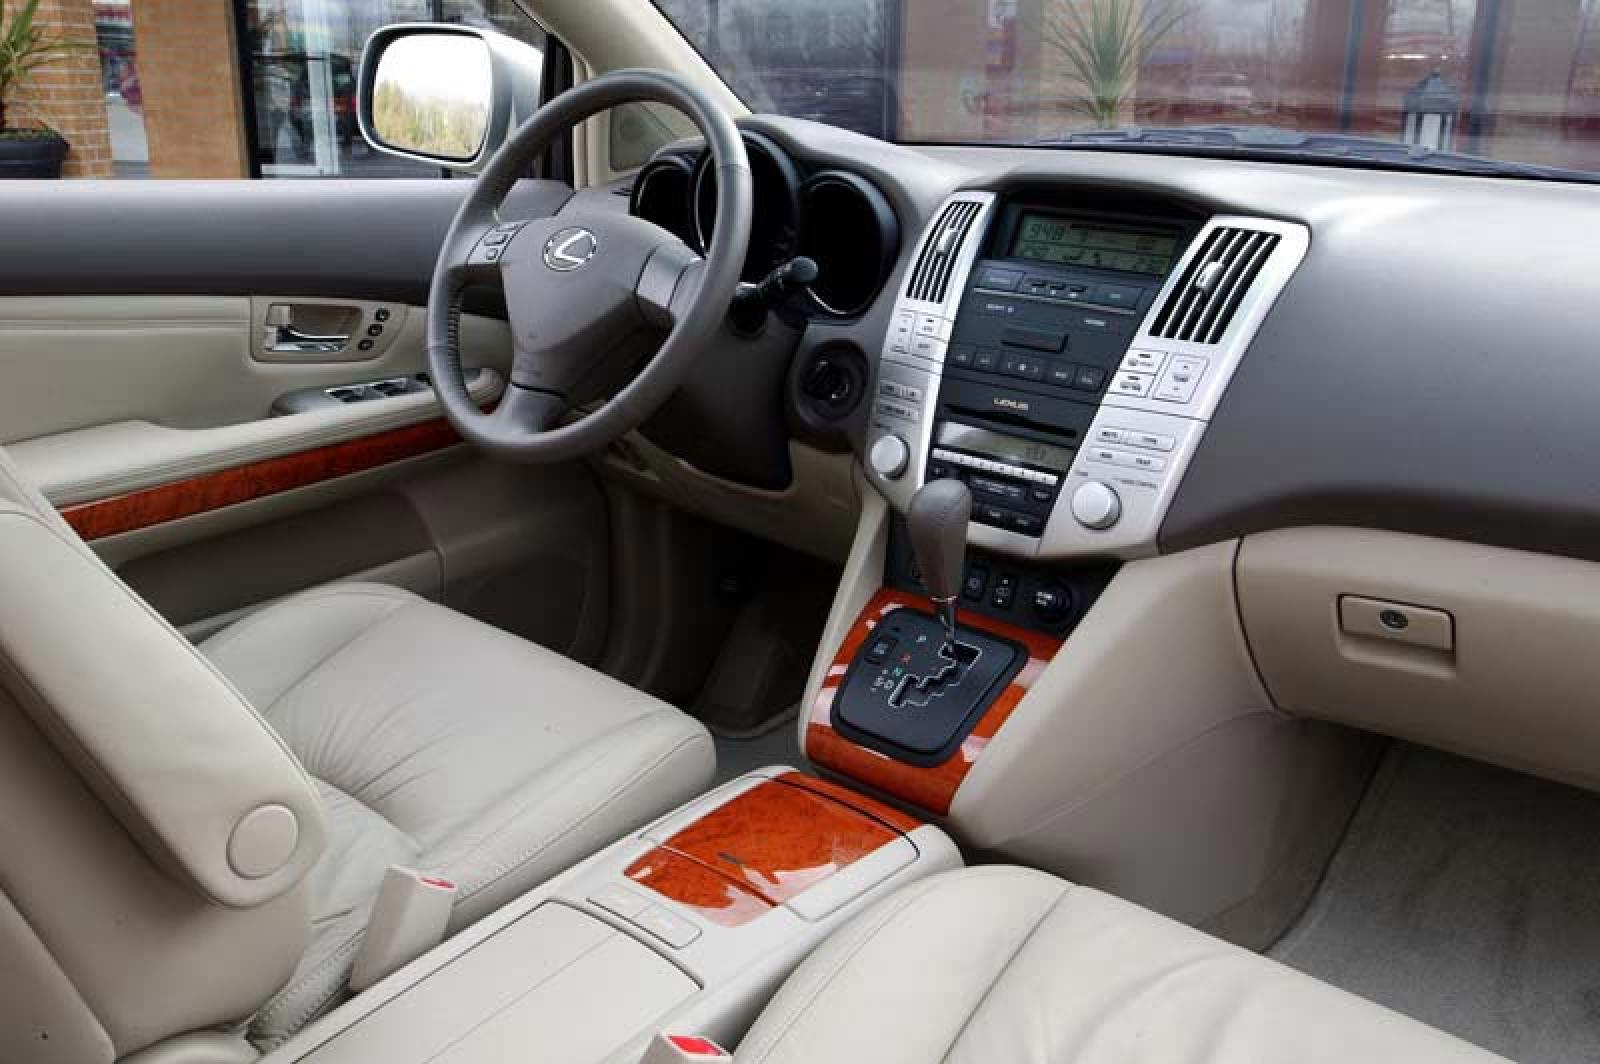 2006 Lexus RX 330 - Information and photos - ZombieDrive